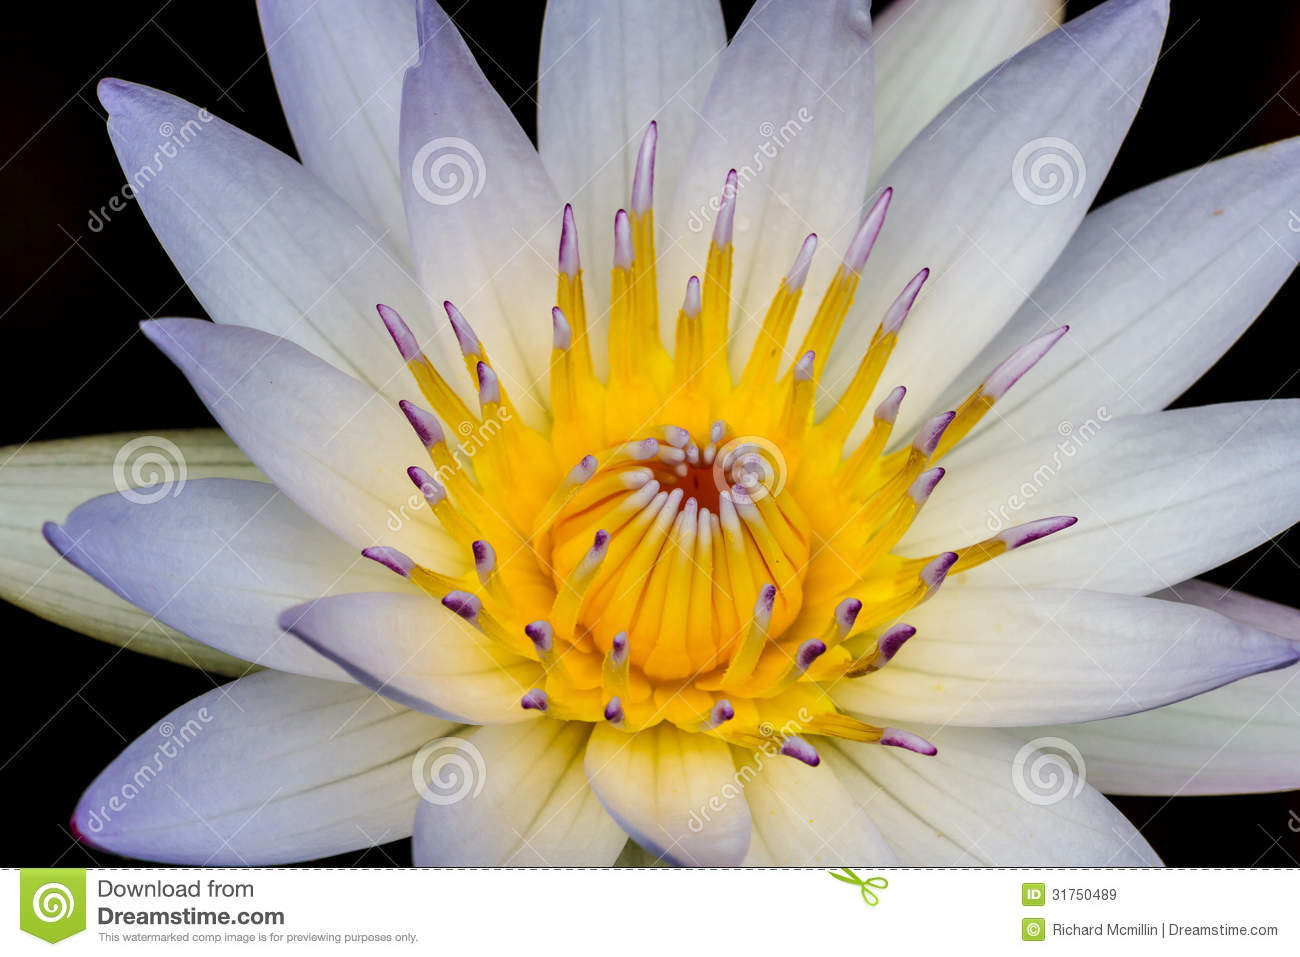 Closeup of a tropical white water lily flower nymphaeaceae stock a closeup of a tropical white water lily flower nymphaeaceae with center stamens closed izmirmasajfo